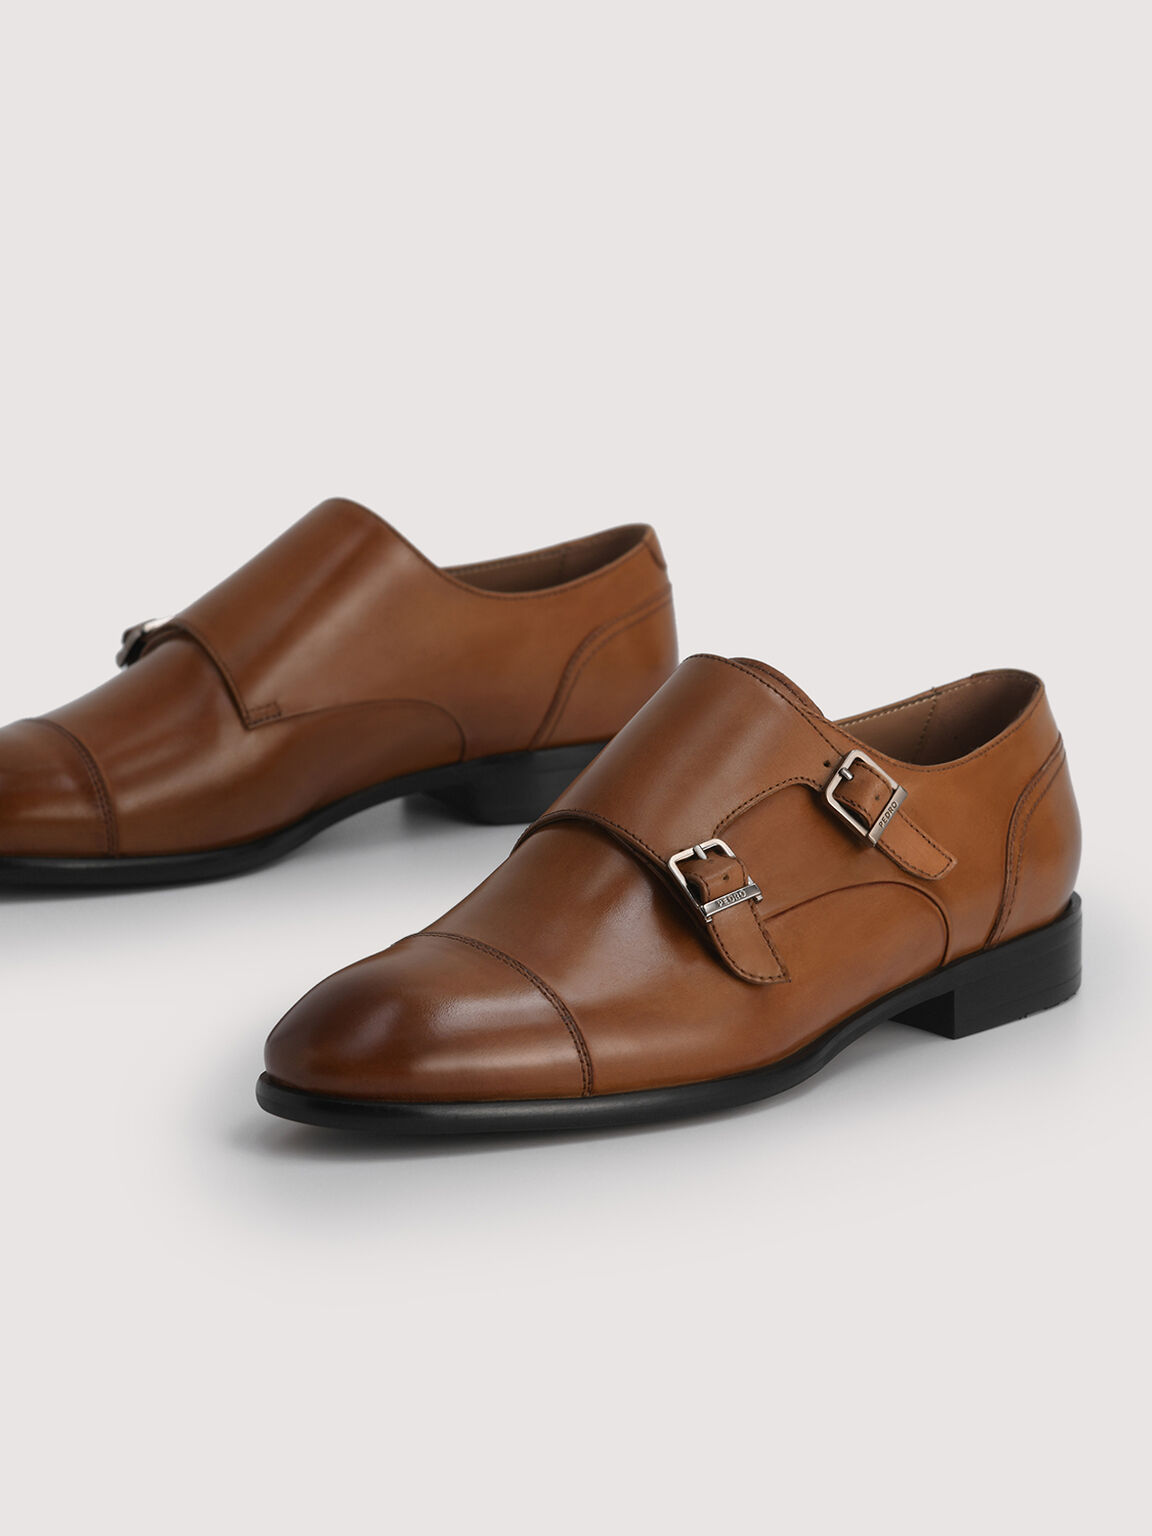 Leather Buckled Loafers, Cognac, hi-res